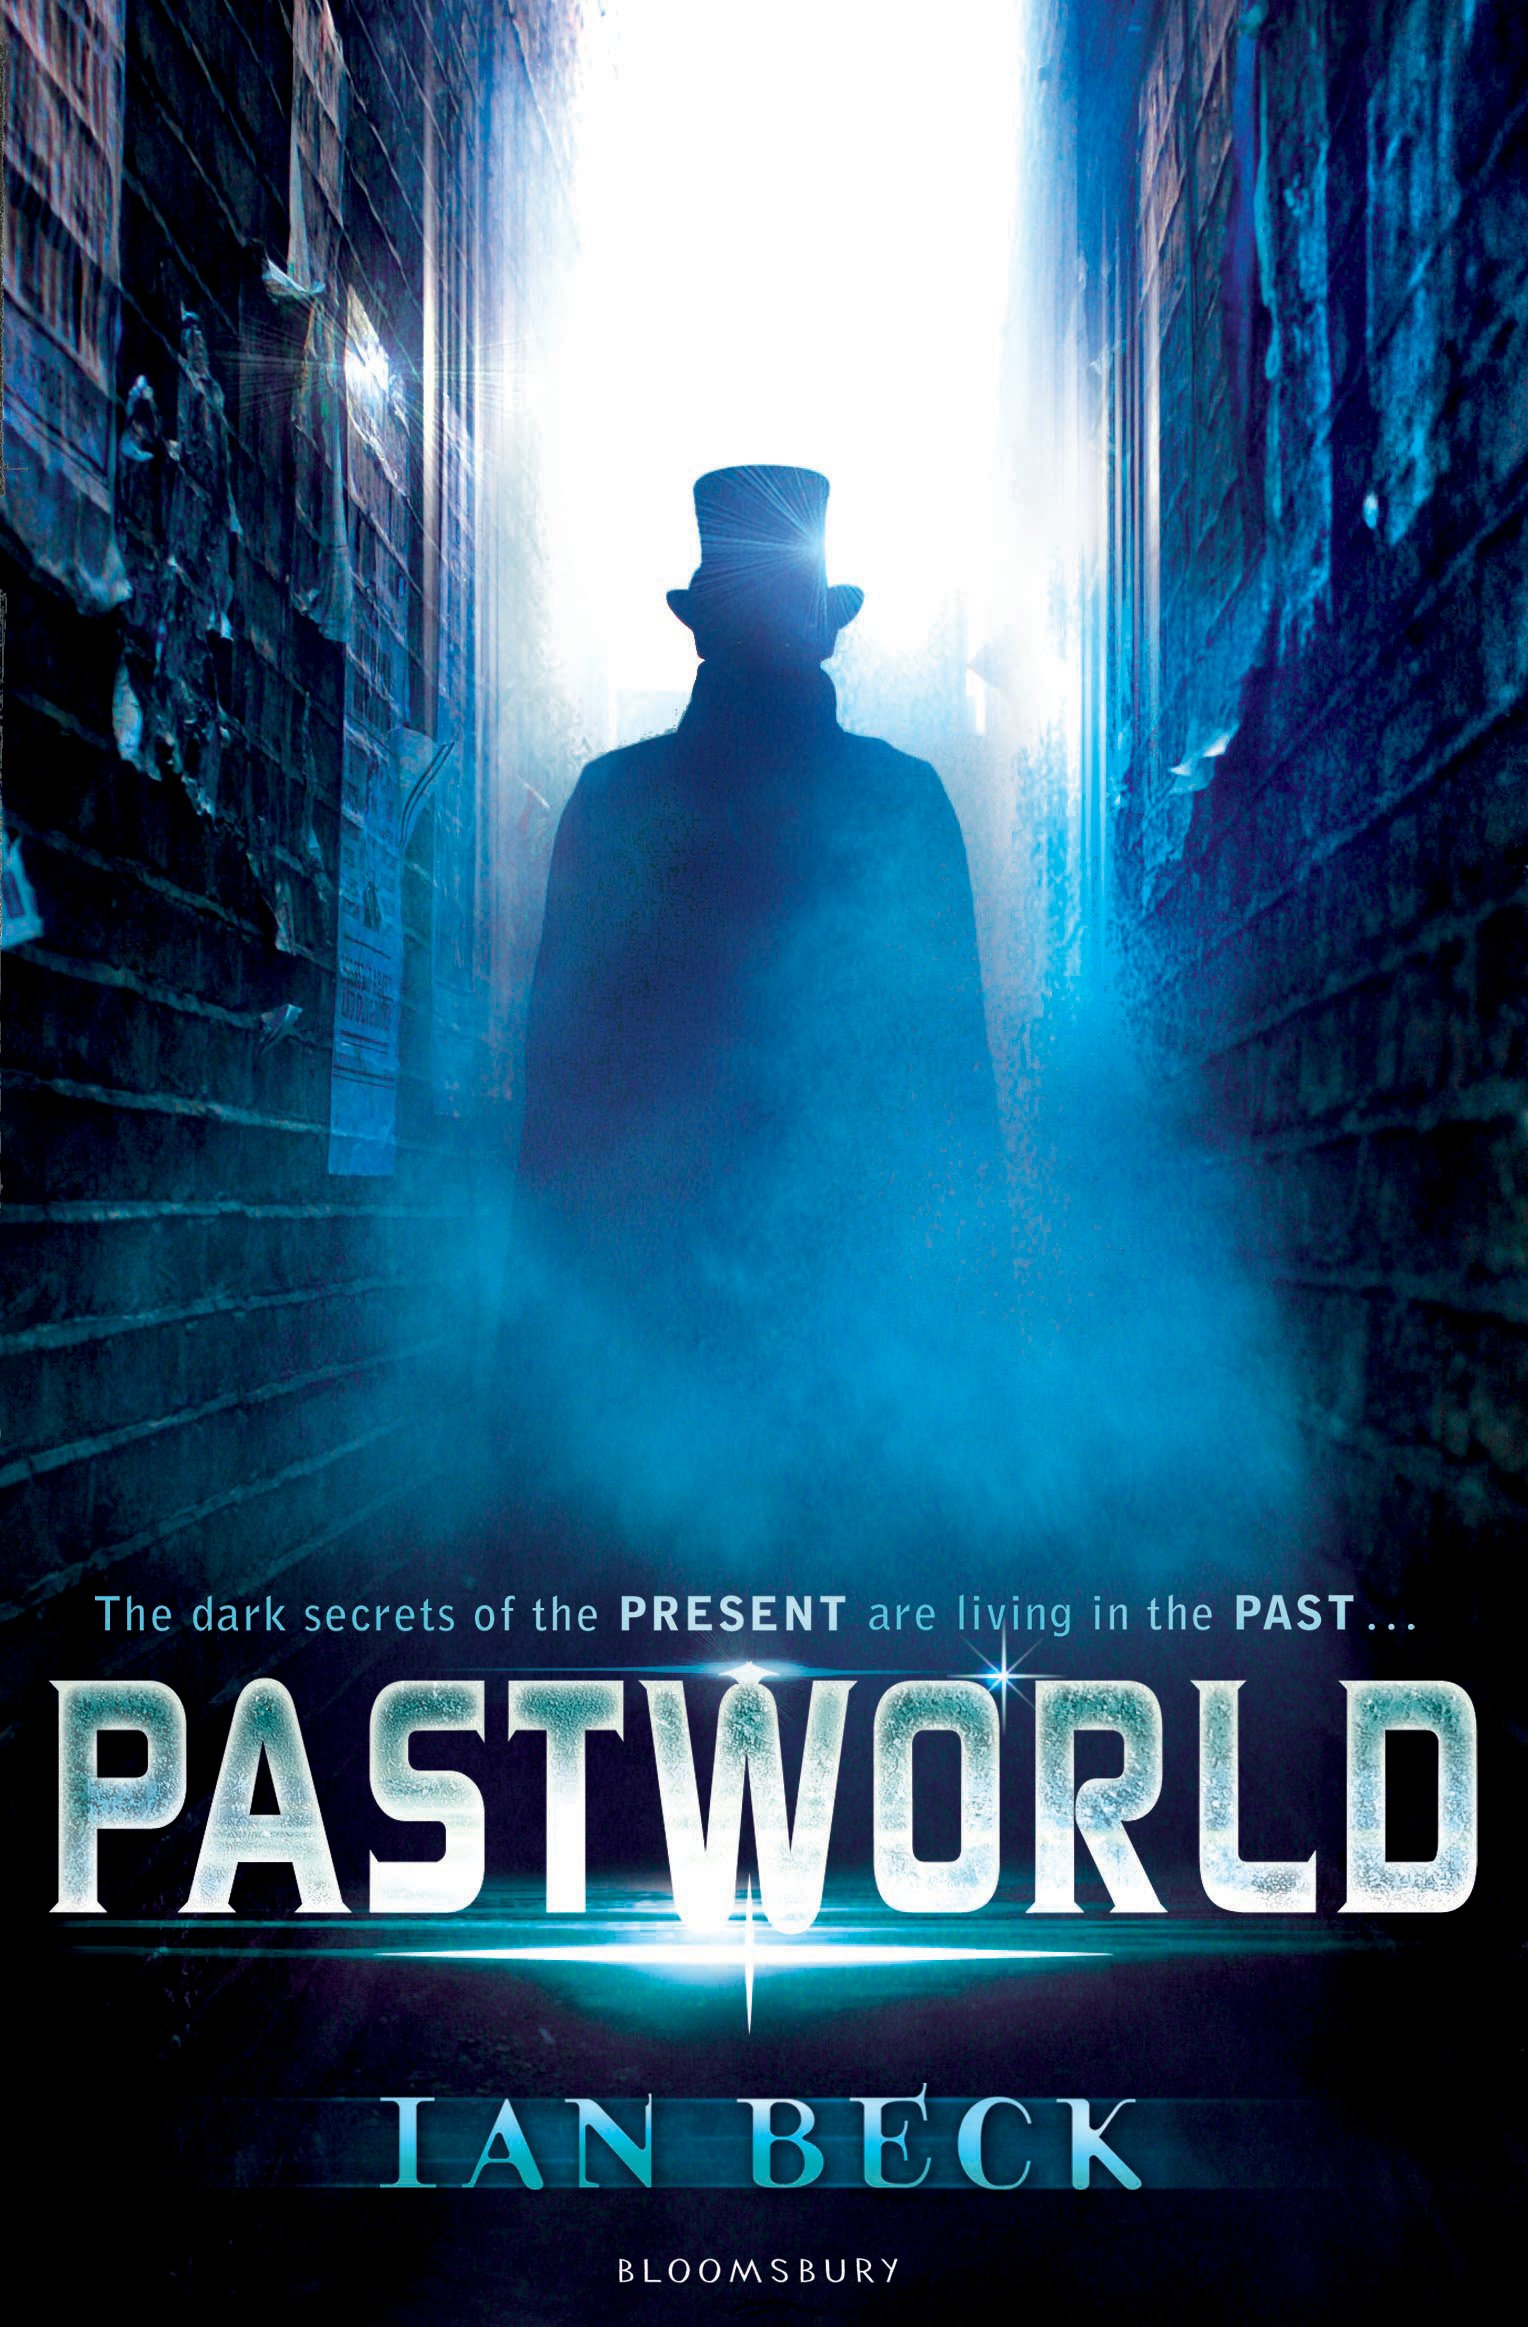 Buy PASTWORLD by Ian Beck